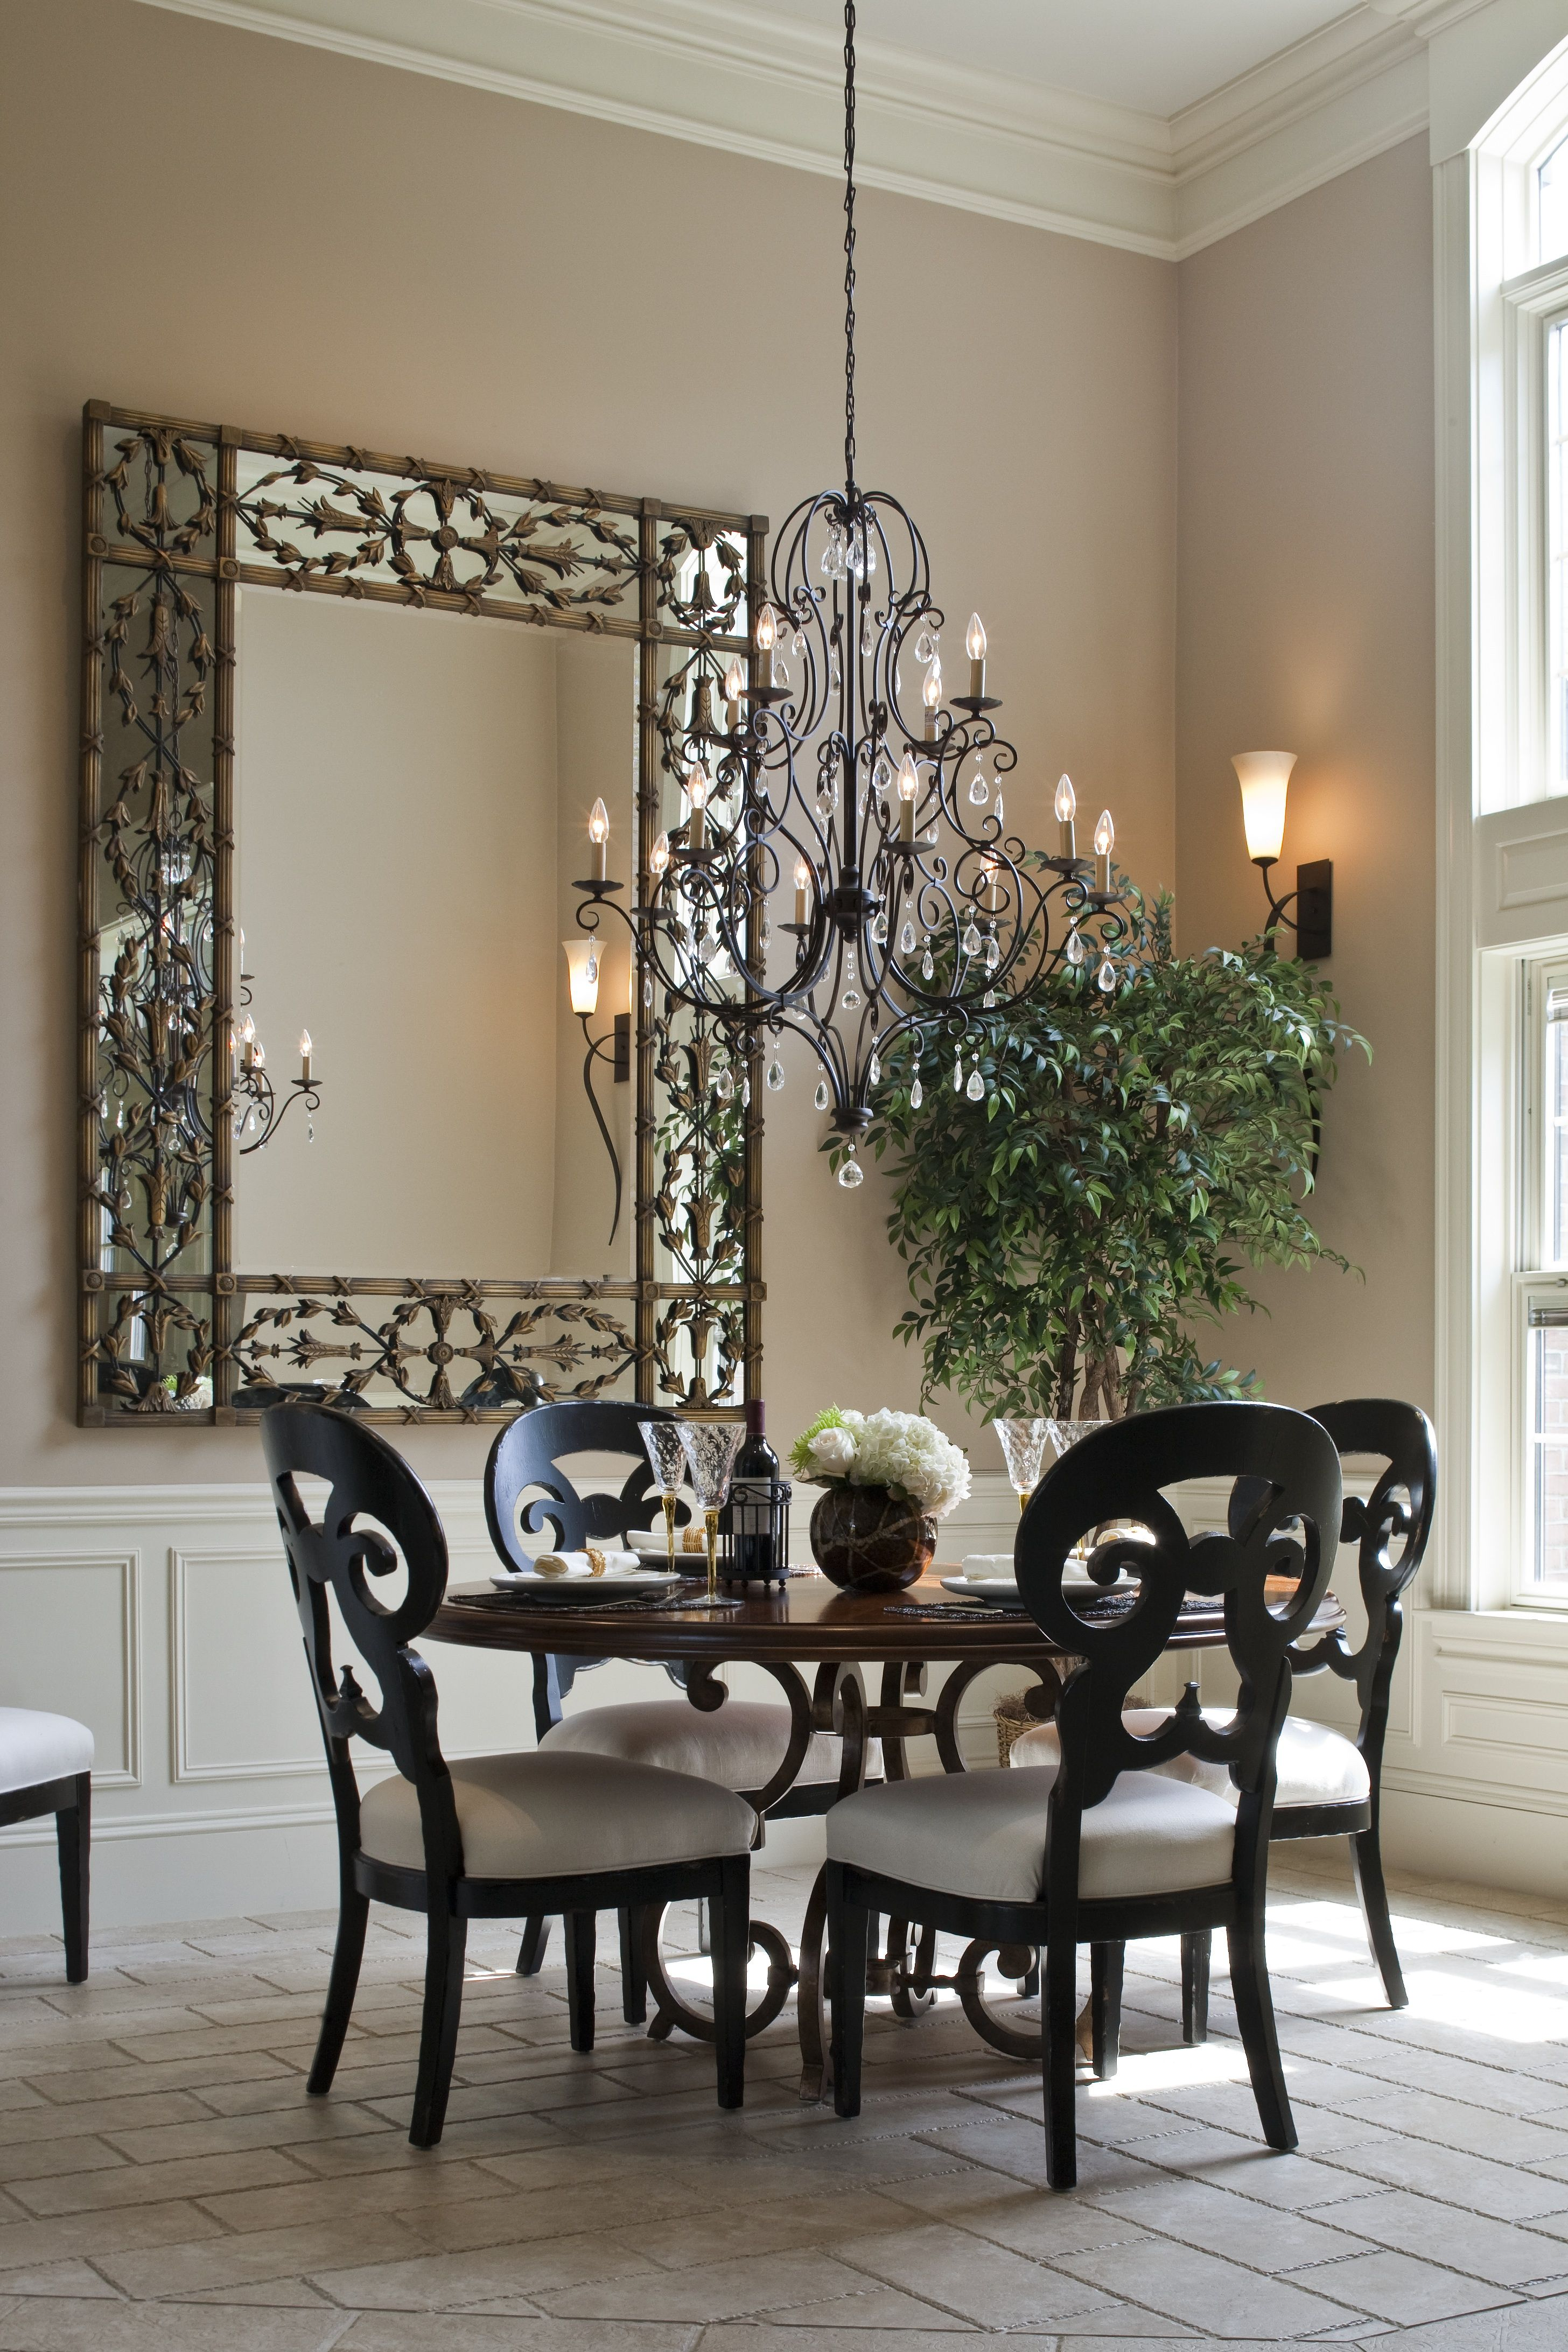 mdk design associates dining small dining room with round